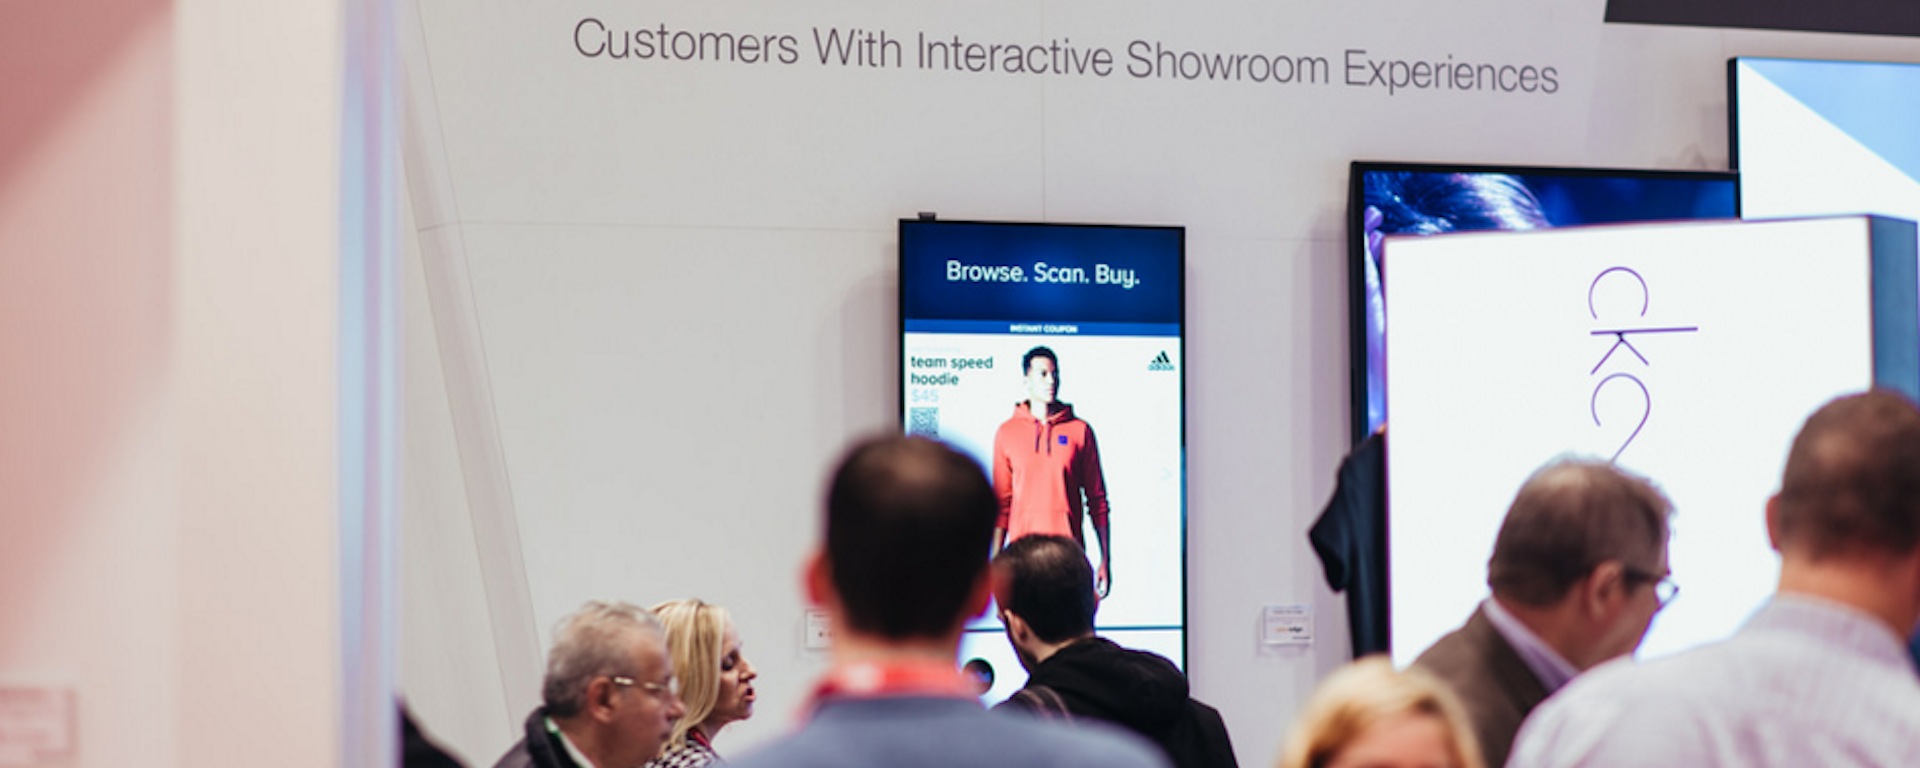 Beacon technology for retail is allowing brands to connect with shoppers on an individual level.